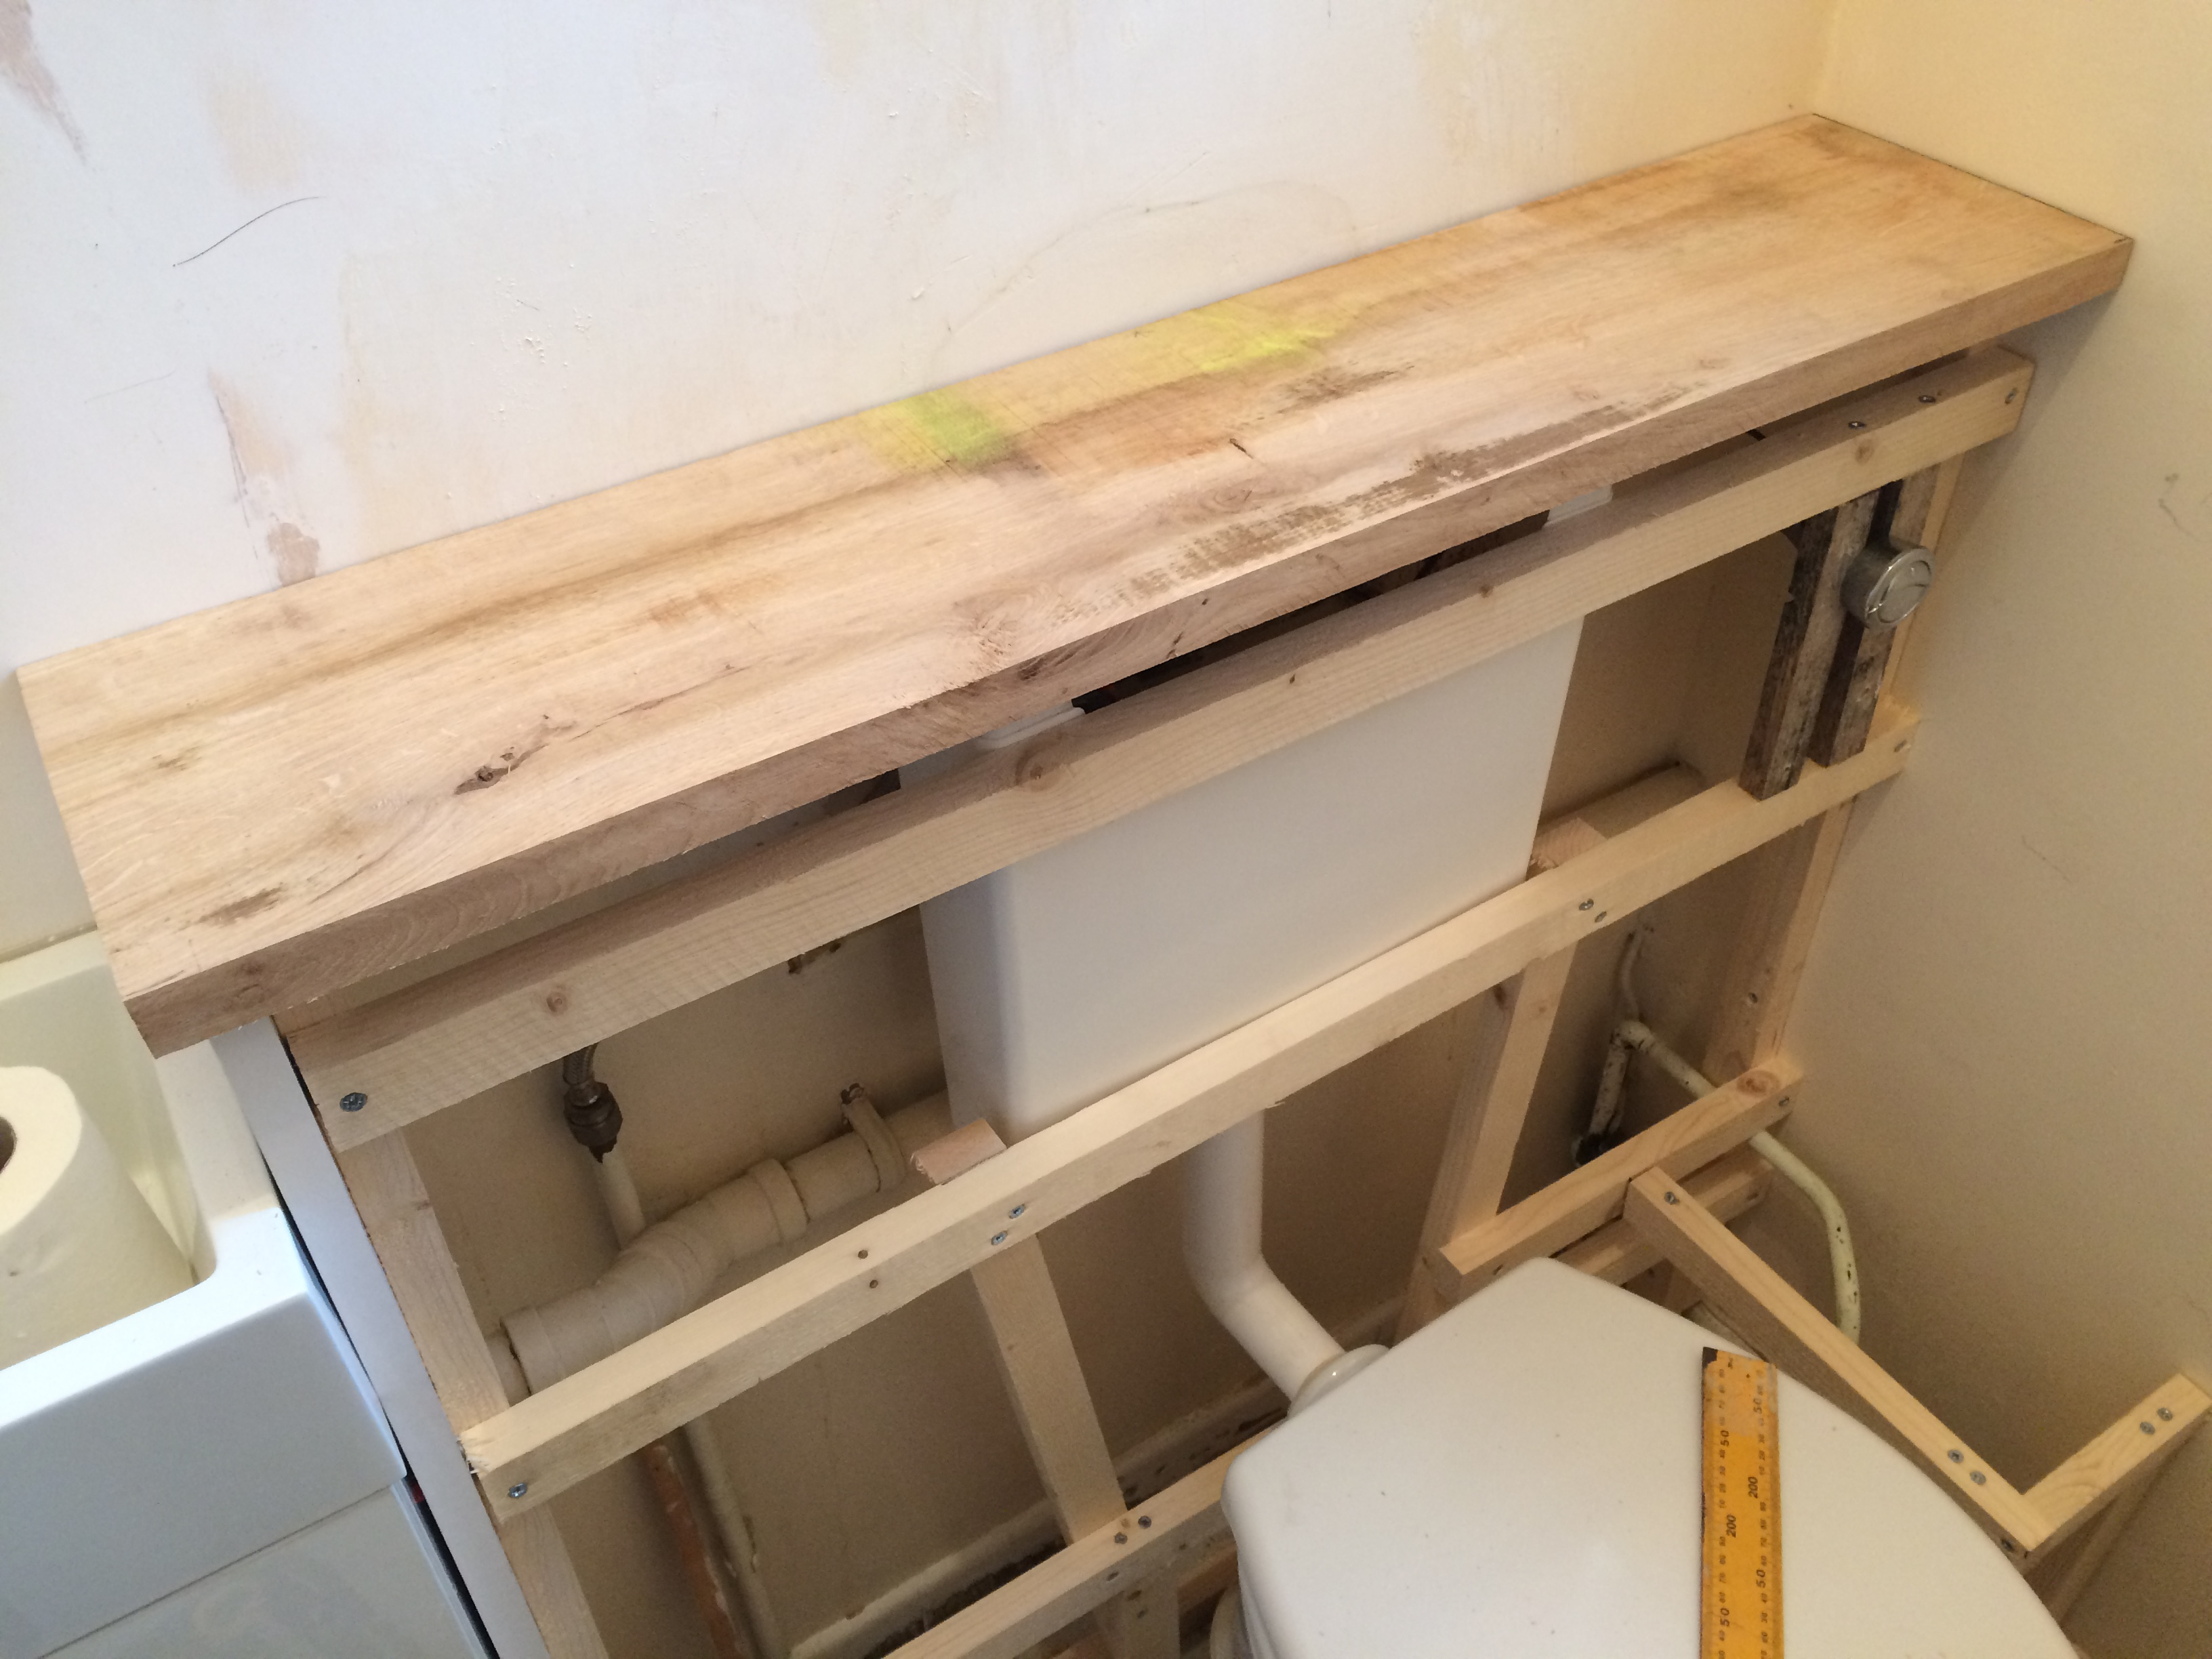 Bespoke Carpentry and Cabinet Making Service